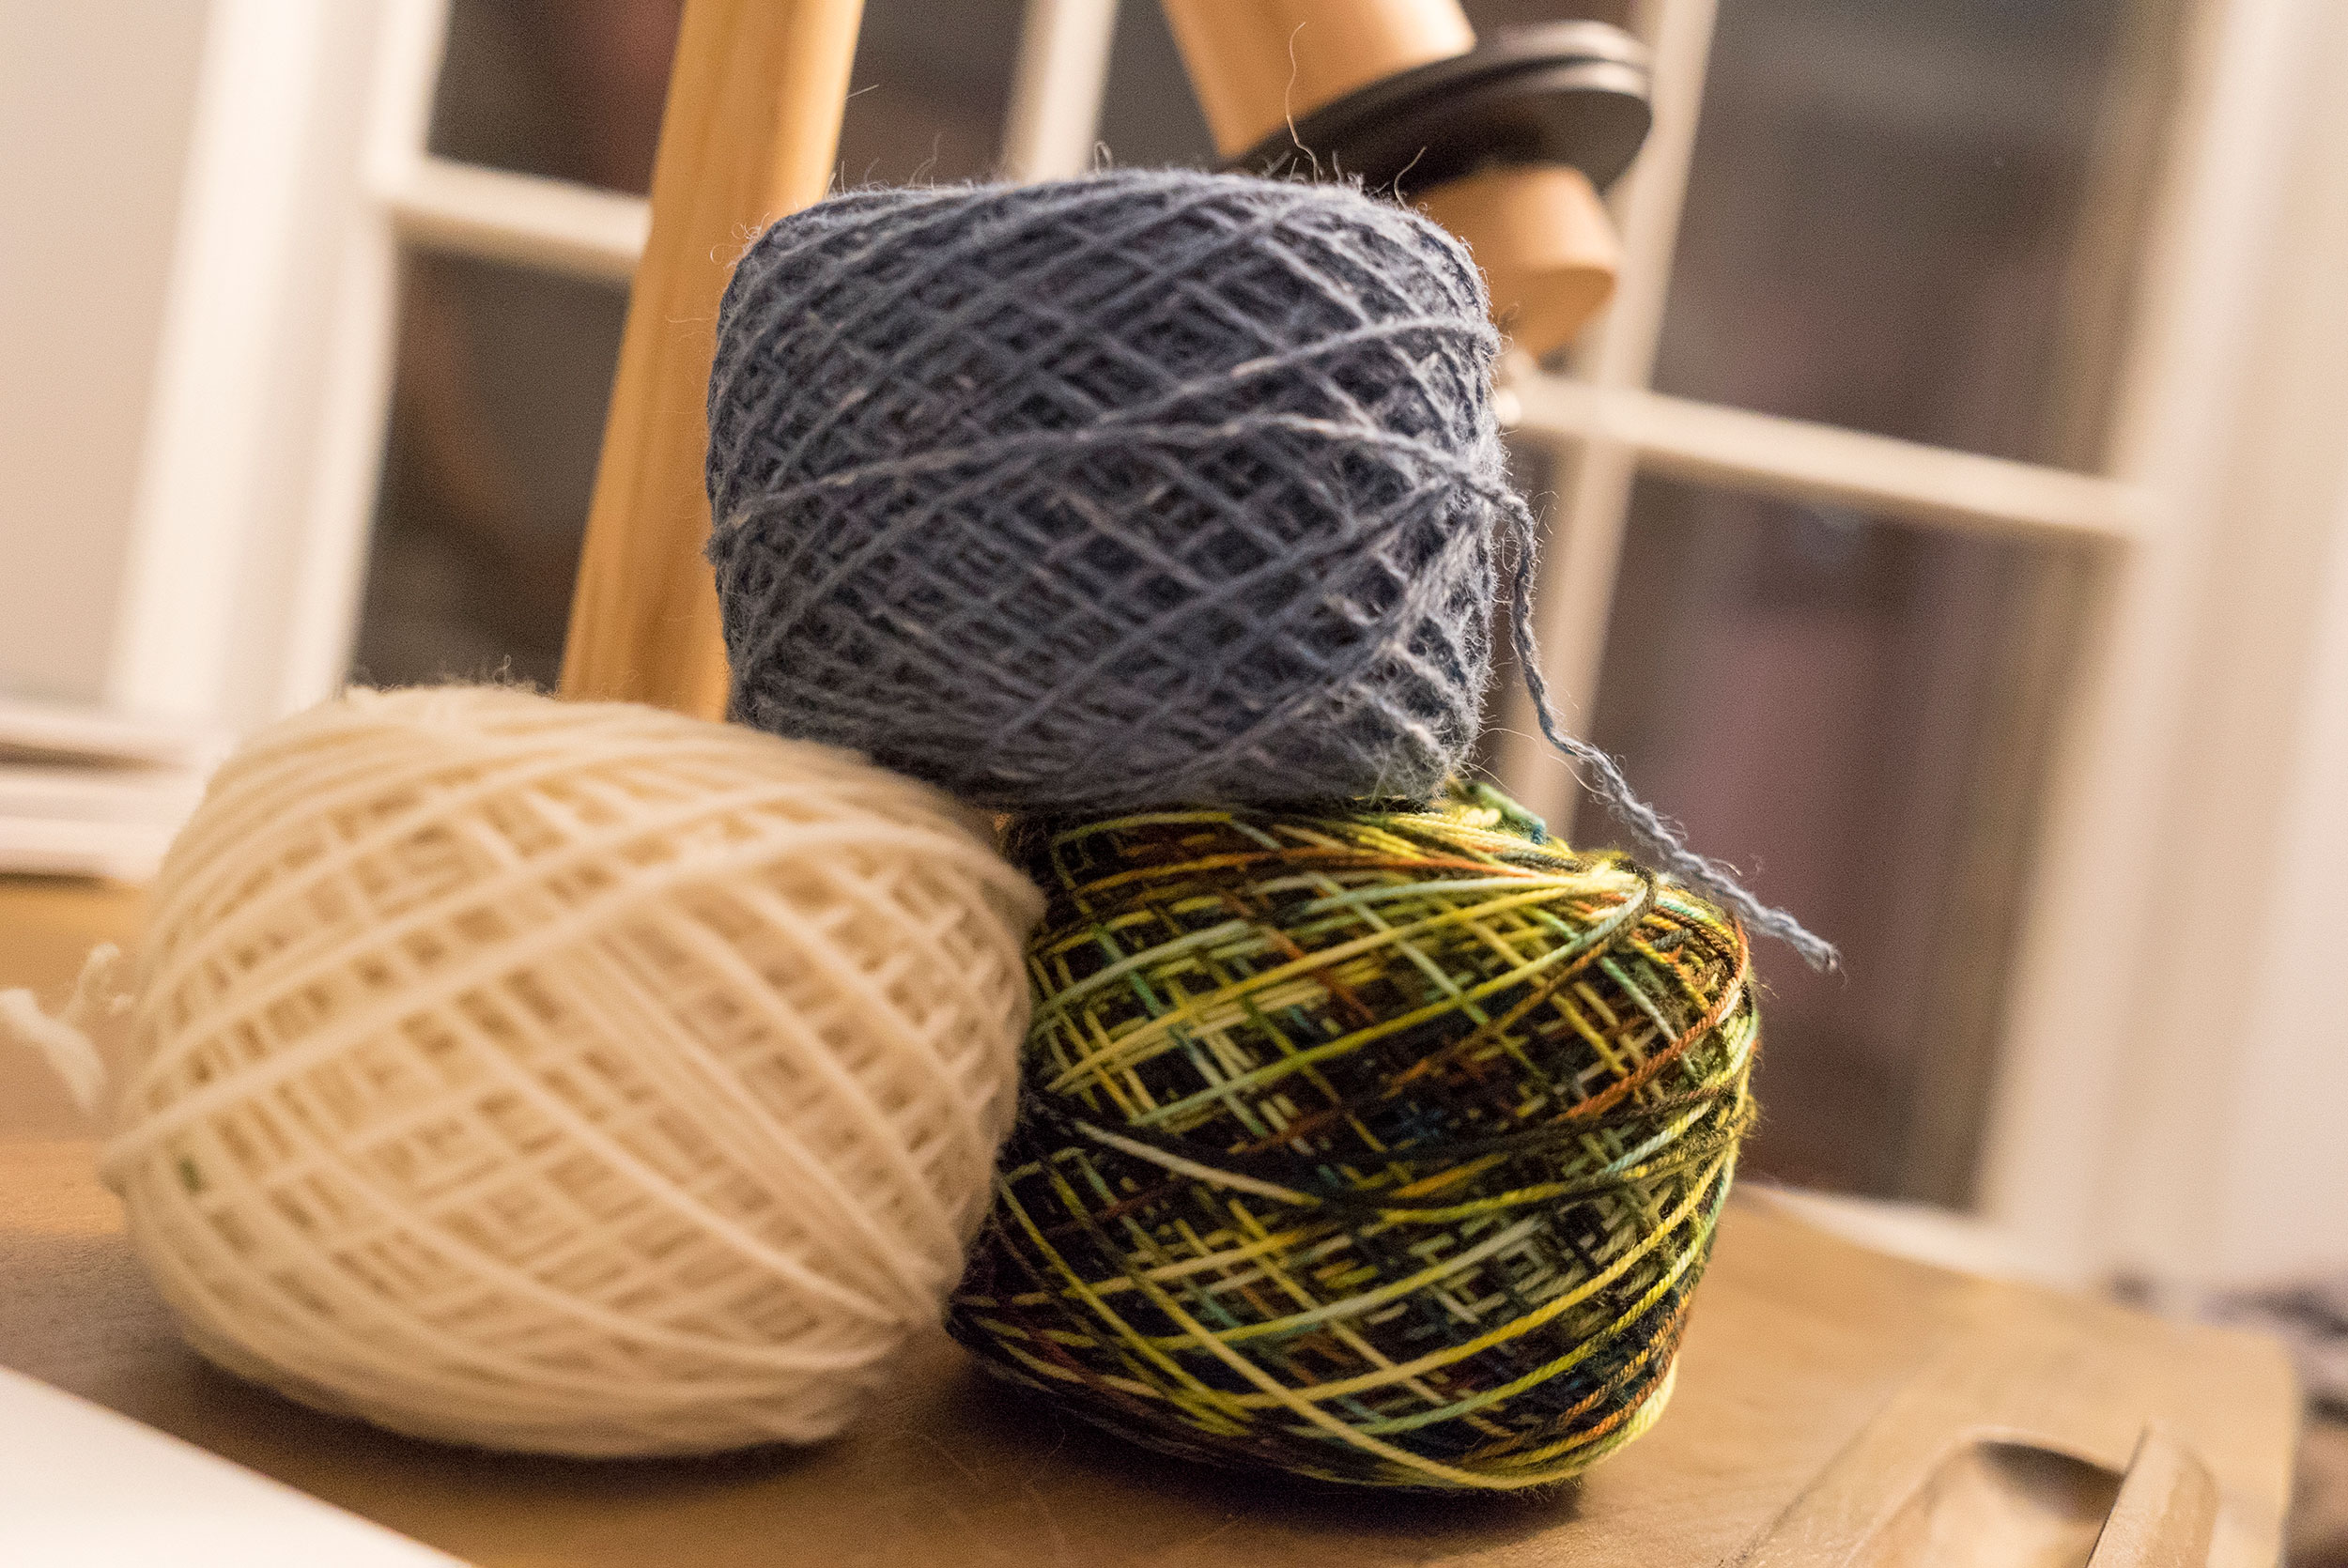 You-Spin-Me-Right-Yarn-Baby-07.jpg